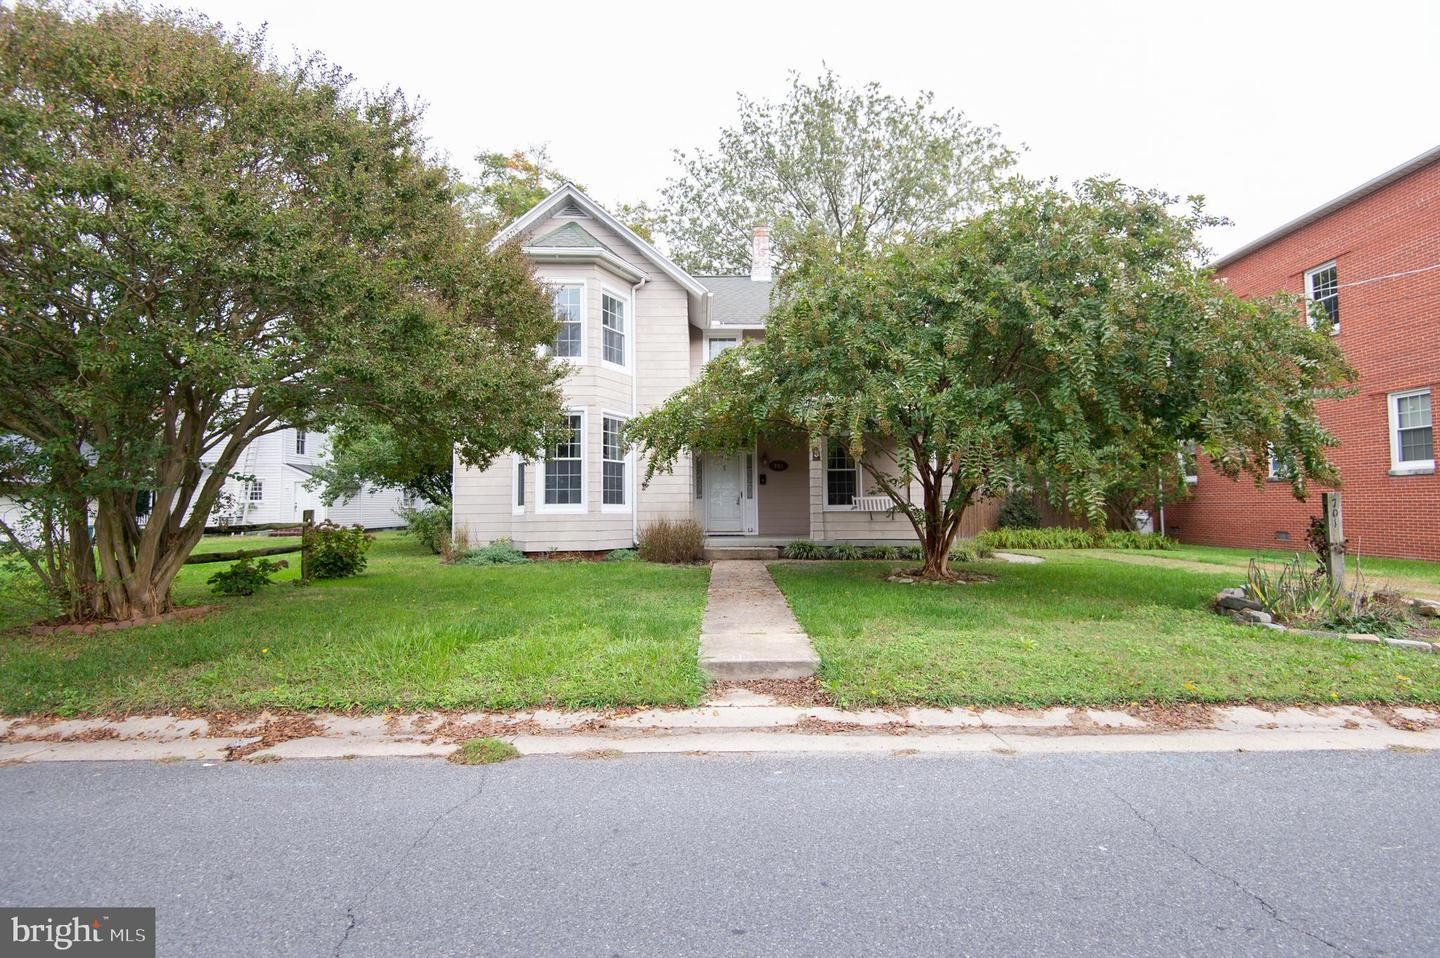 Photo for 701 GLASGOW ST, CAMBRIDGE, MD 21613 (MLS # MDDO126248)